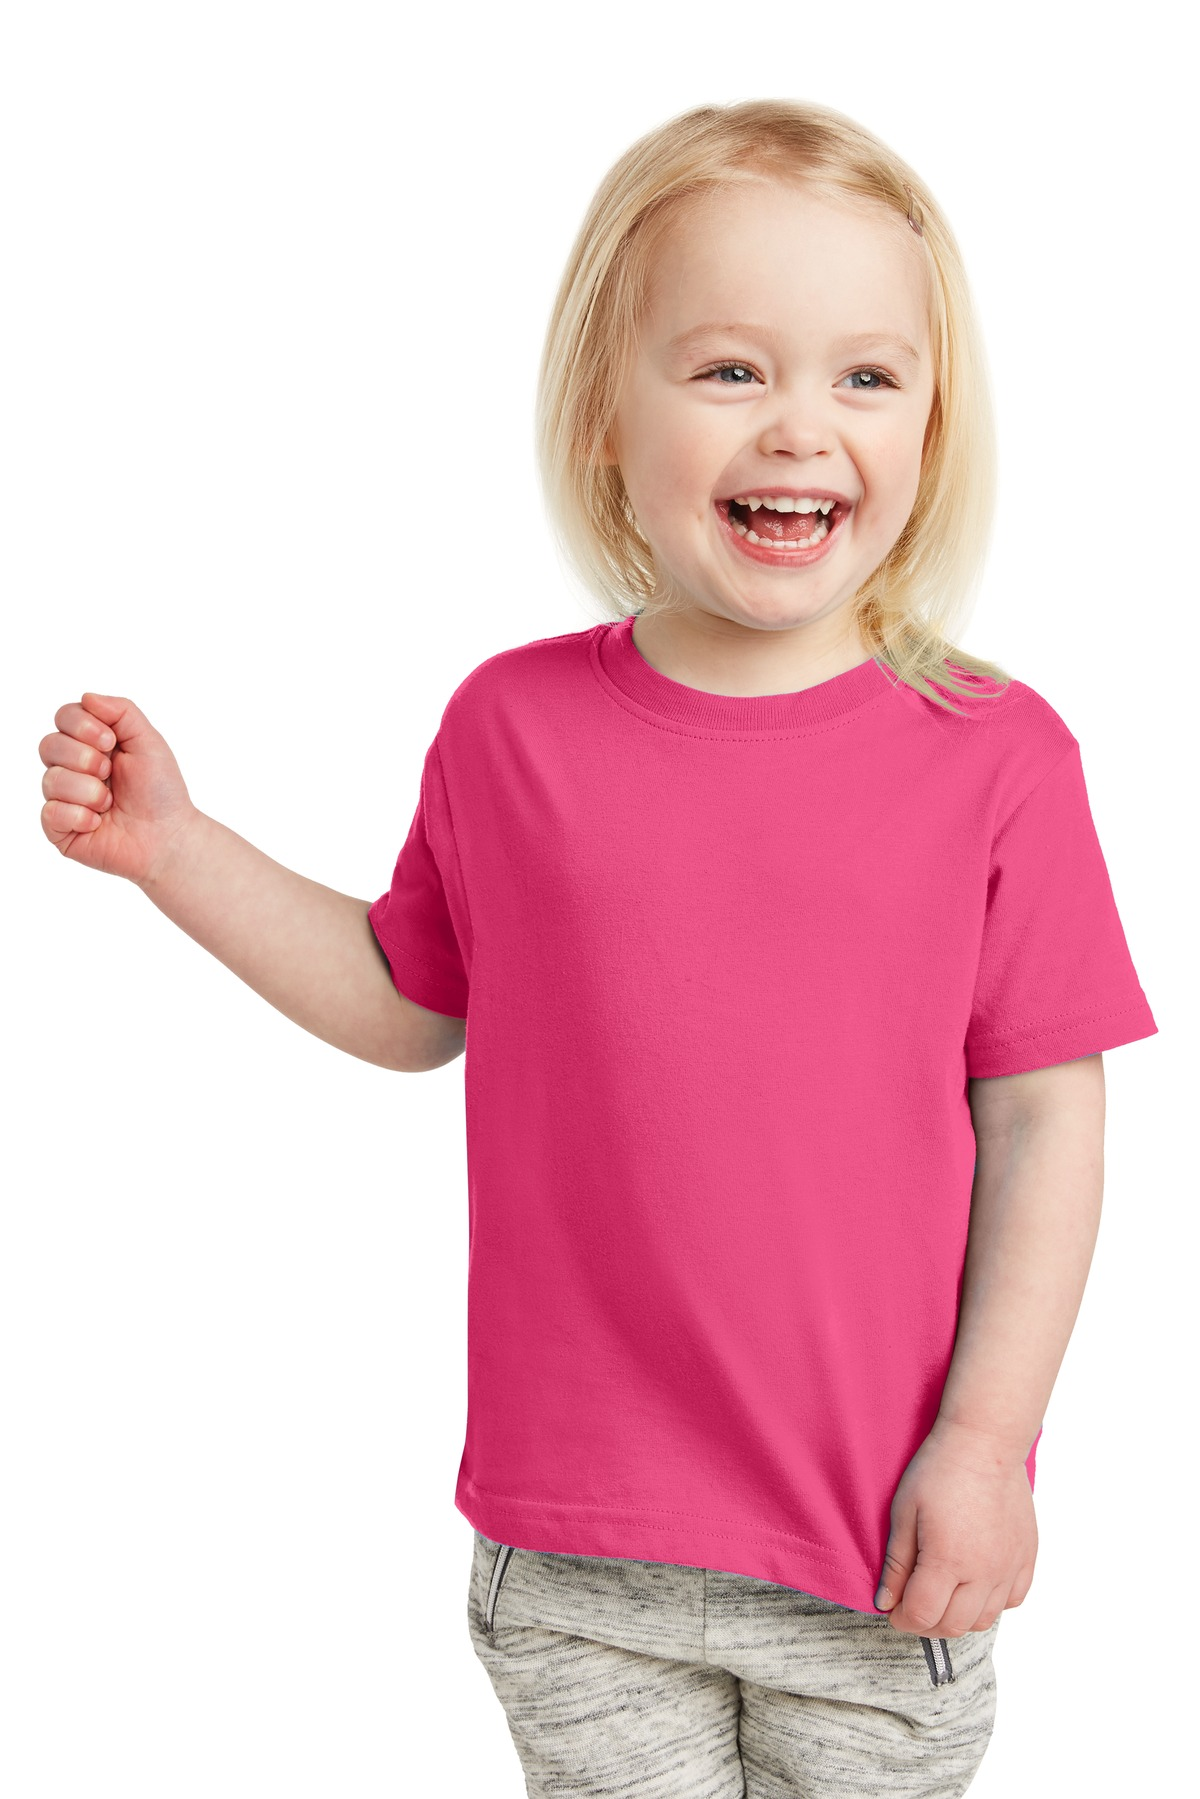 Rabbit Skins ™  Toddler Fine Jersey Tee. RS3321 - Hot Pink